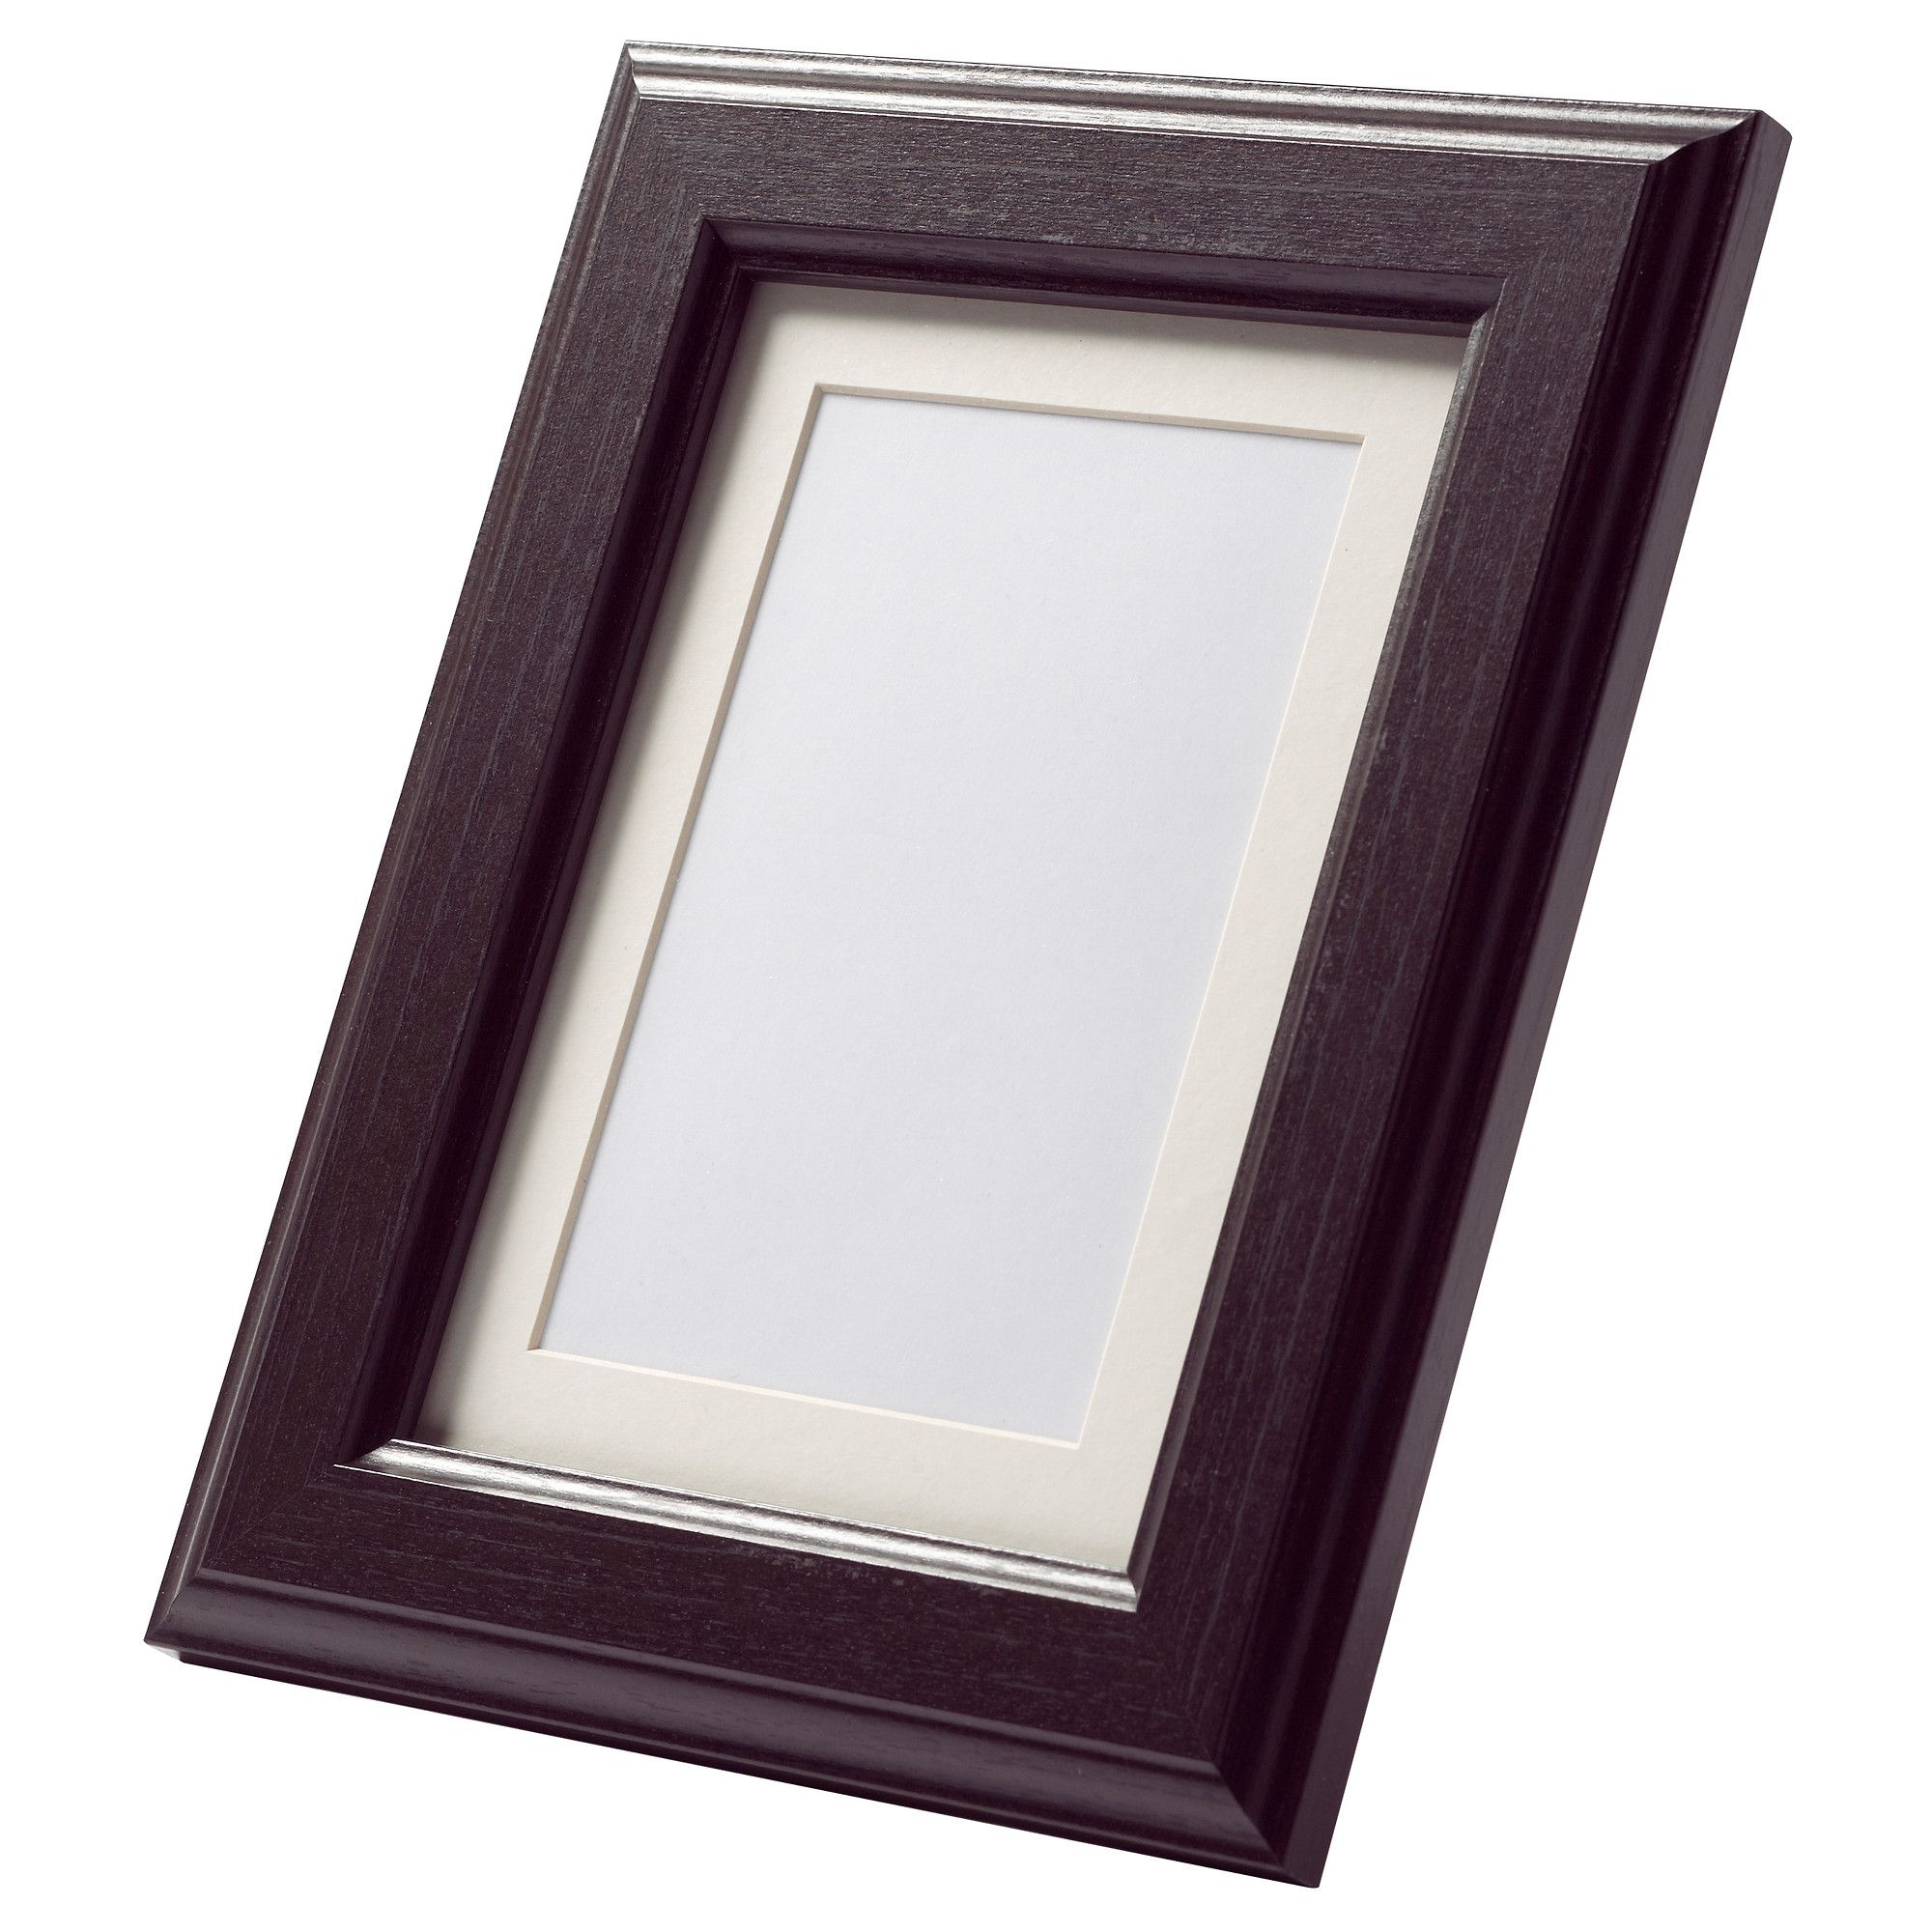 Ikea virserum frame 7 x9 the mat enhances the picture ikea virserum frame 7 the mat enhances the picture and makes framing easye mat is acid free and will not discolor the picture jeuxipadfo Images